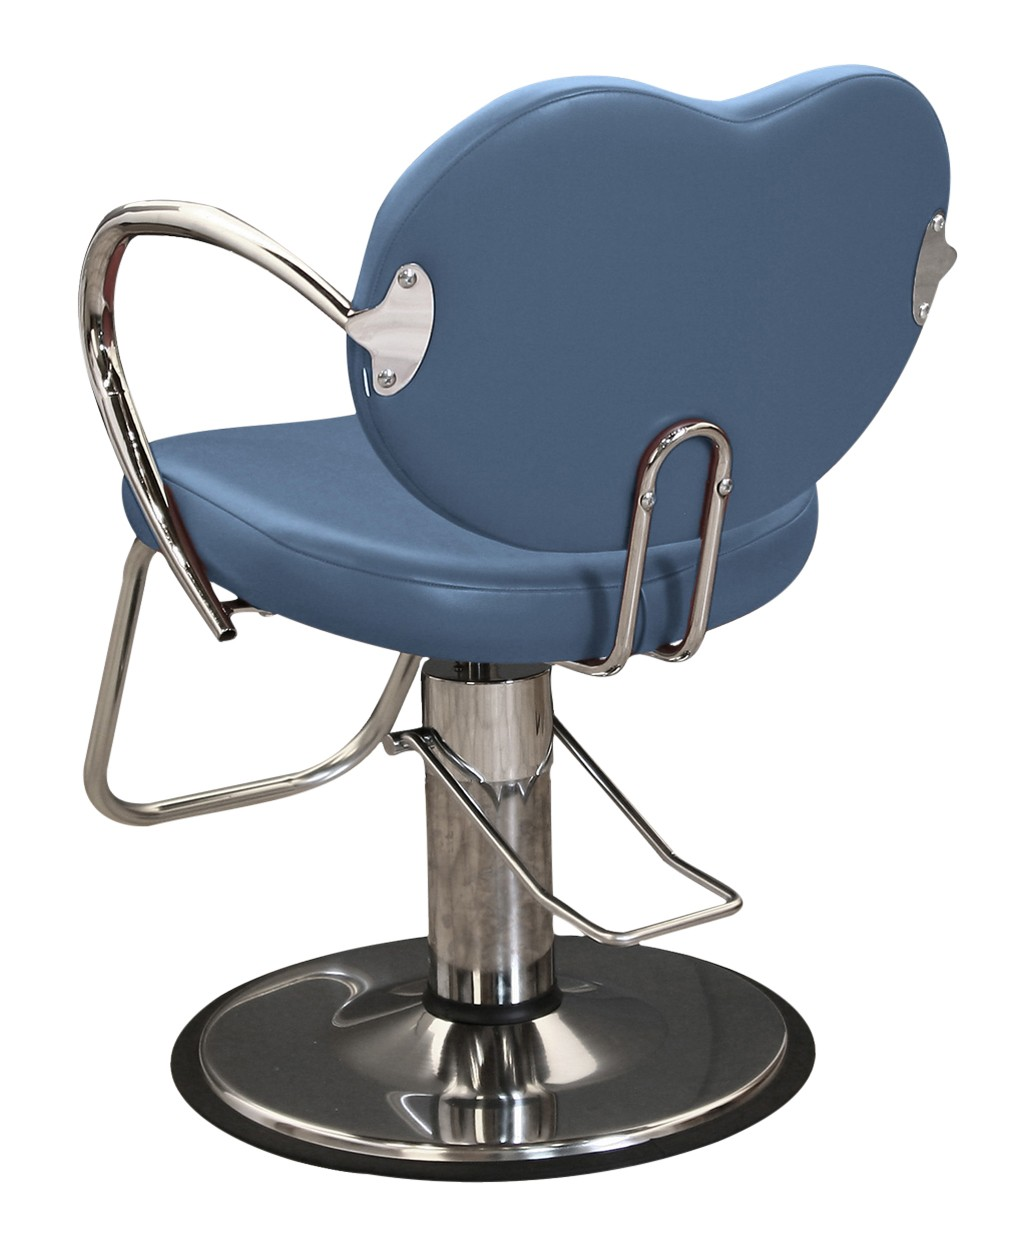 Collins 7000 Bella Styling Chair